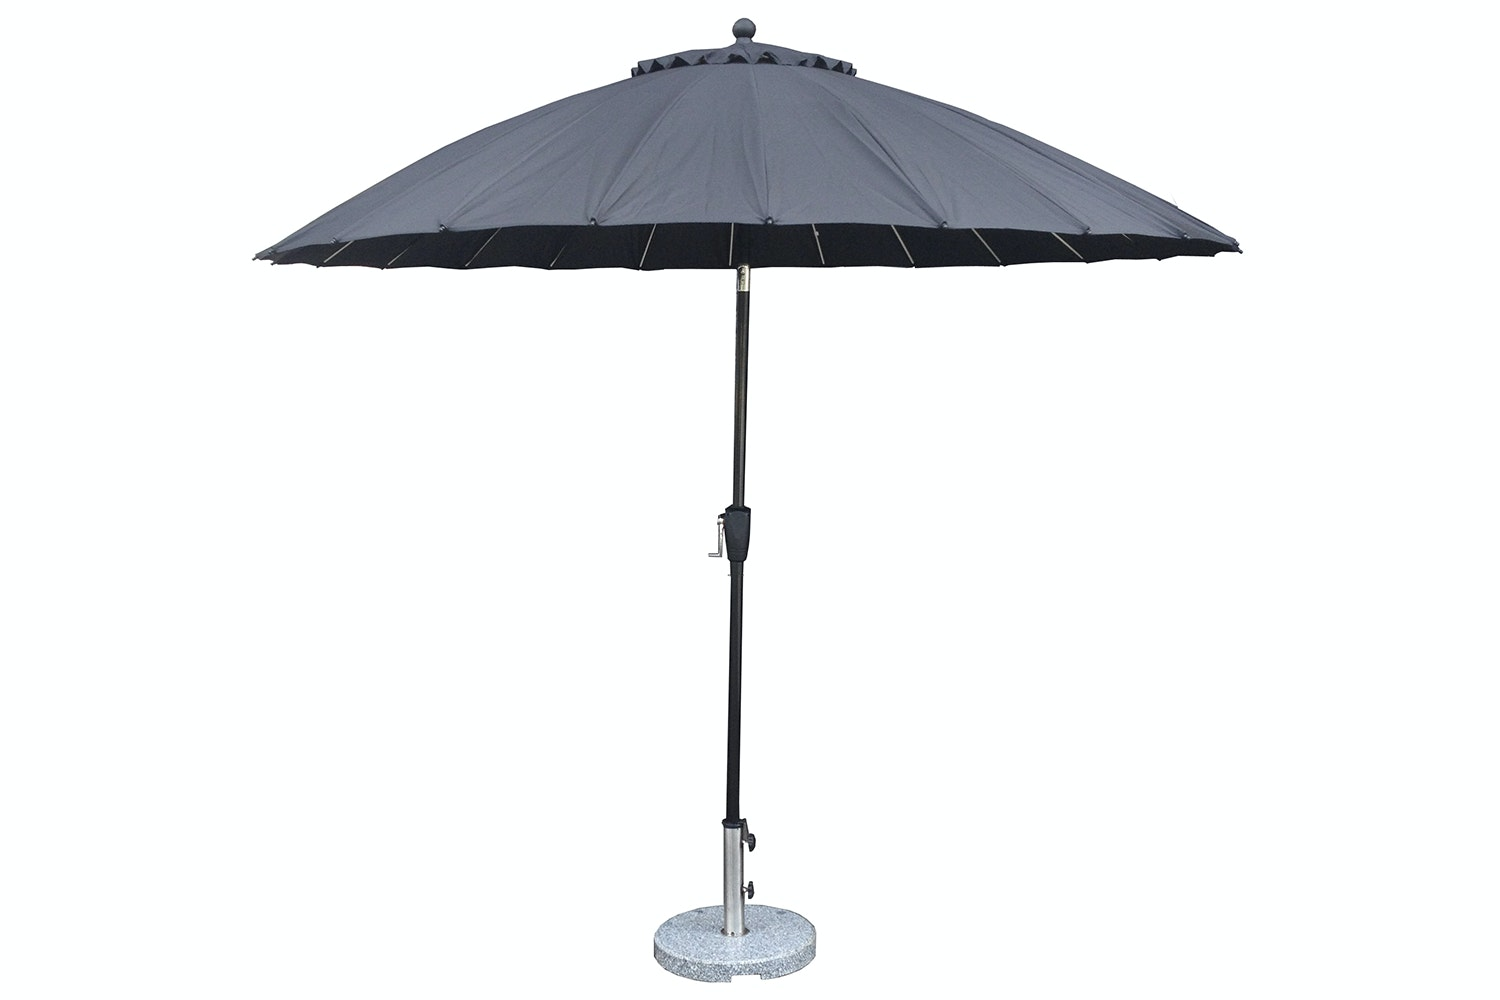 Oriental 2.7m  Black Outdoor Umbrella with 25kg Granite Base by Peros